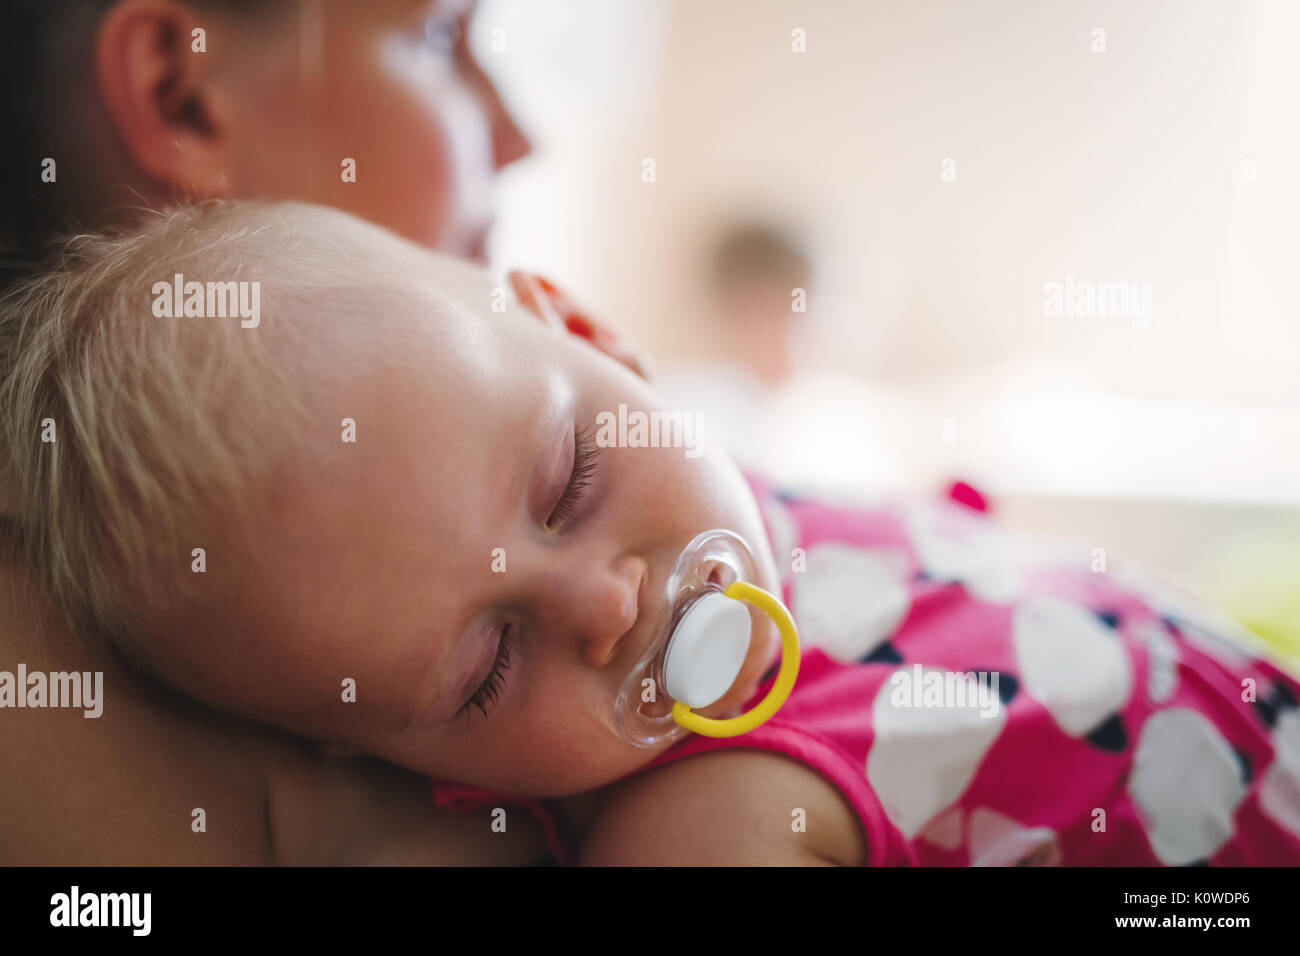 Young mother holding her sleeping newborn baby - Stock Image